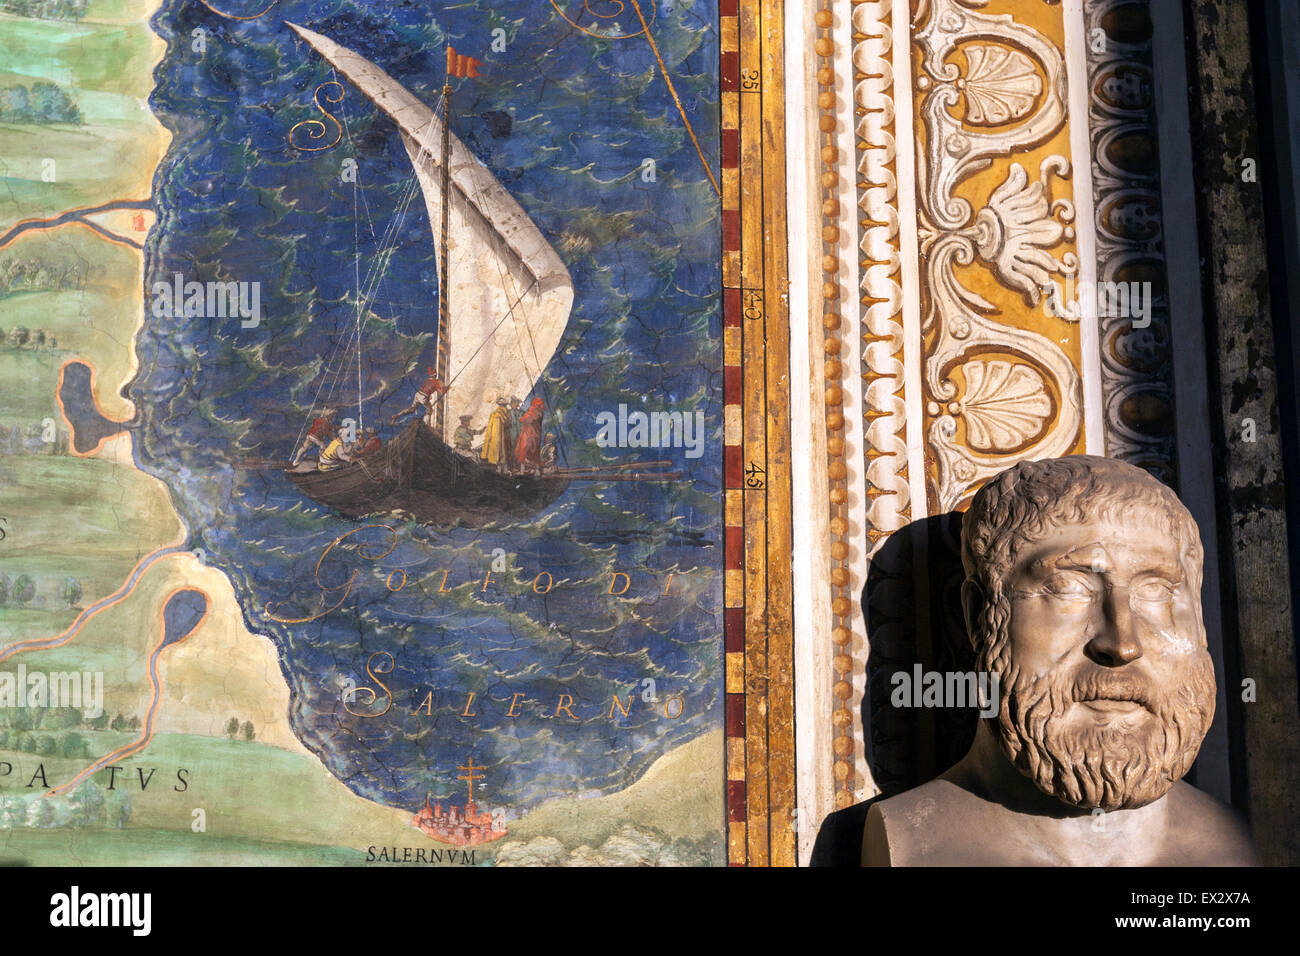 The Gallery of Maps, Galleria delle carte geografiche, a map gallery on the west side of the Vatican Museums - Stock Image